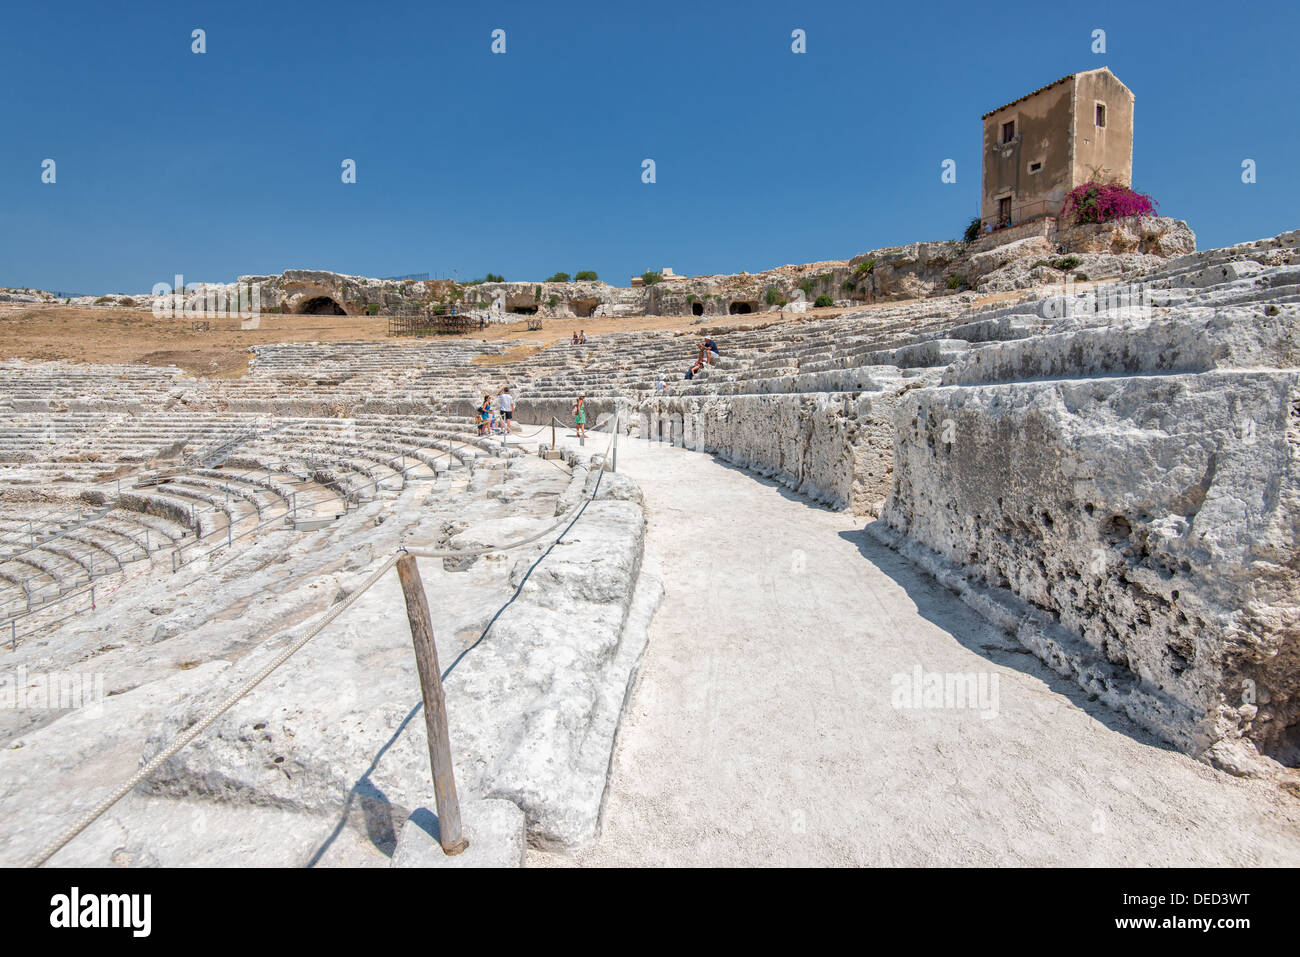 The Greek theater in Syracuse, Sicily. This theater dates back to the 5th century BC. - Stock Image